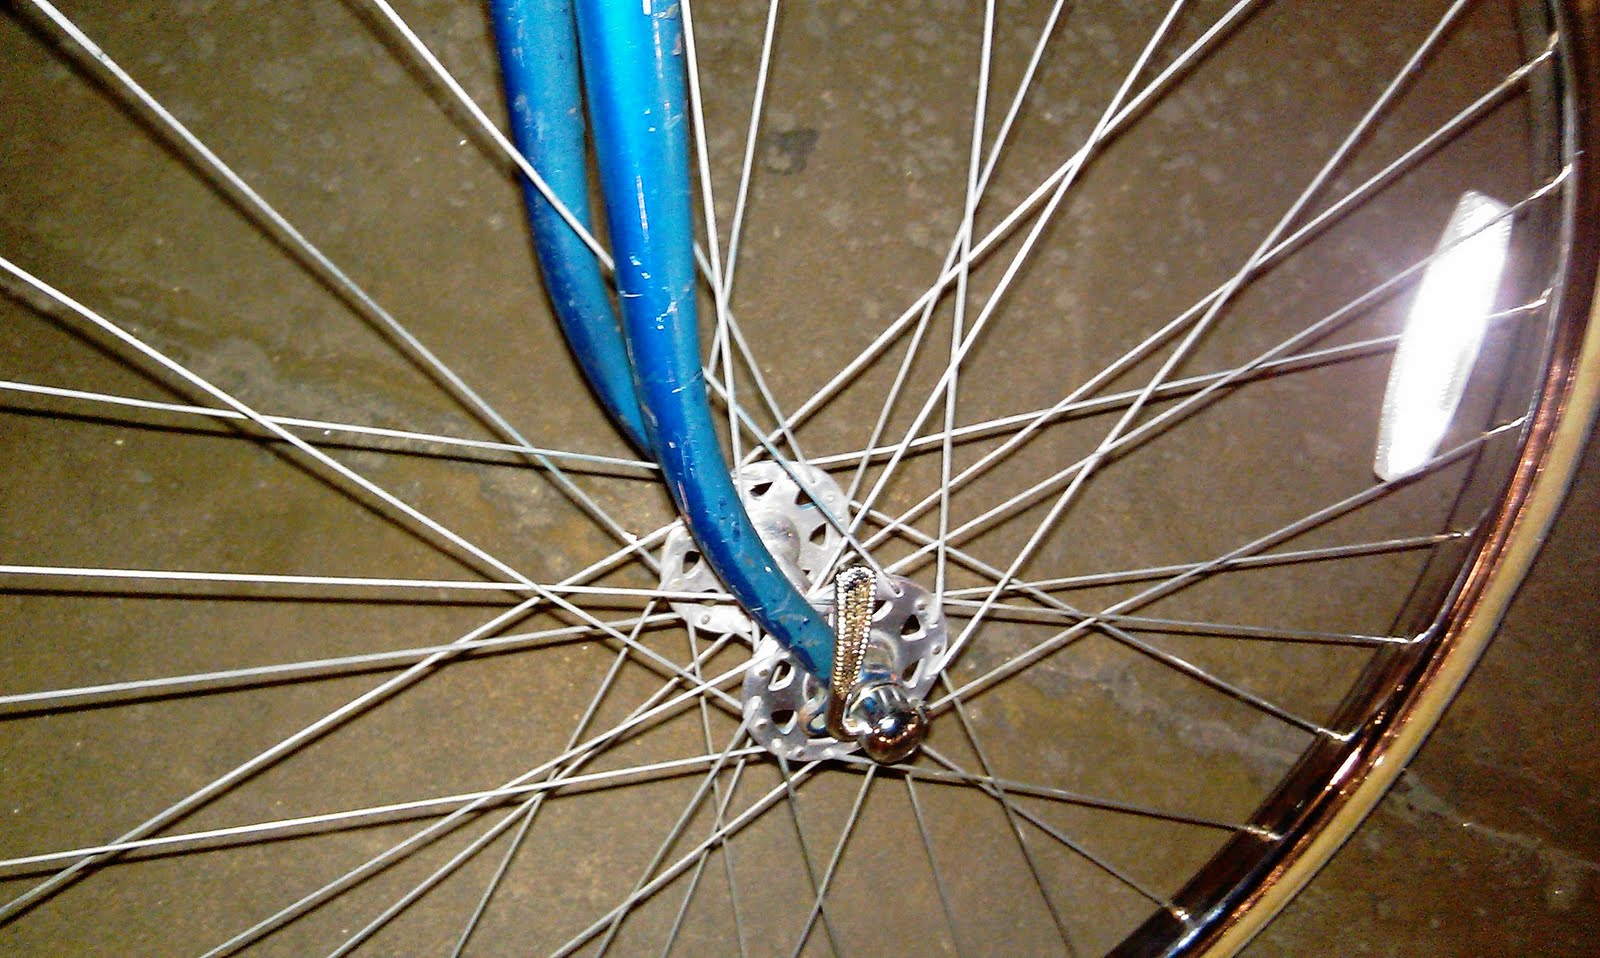 ce4281433d4 ...here are several pics of the bike after cleaning up all exposed metal: